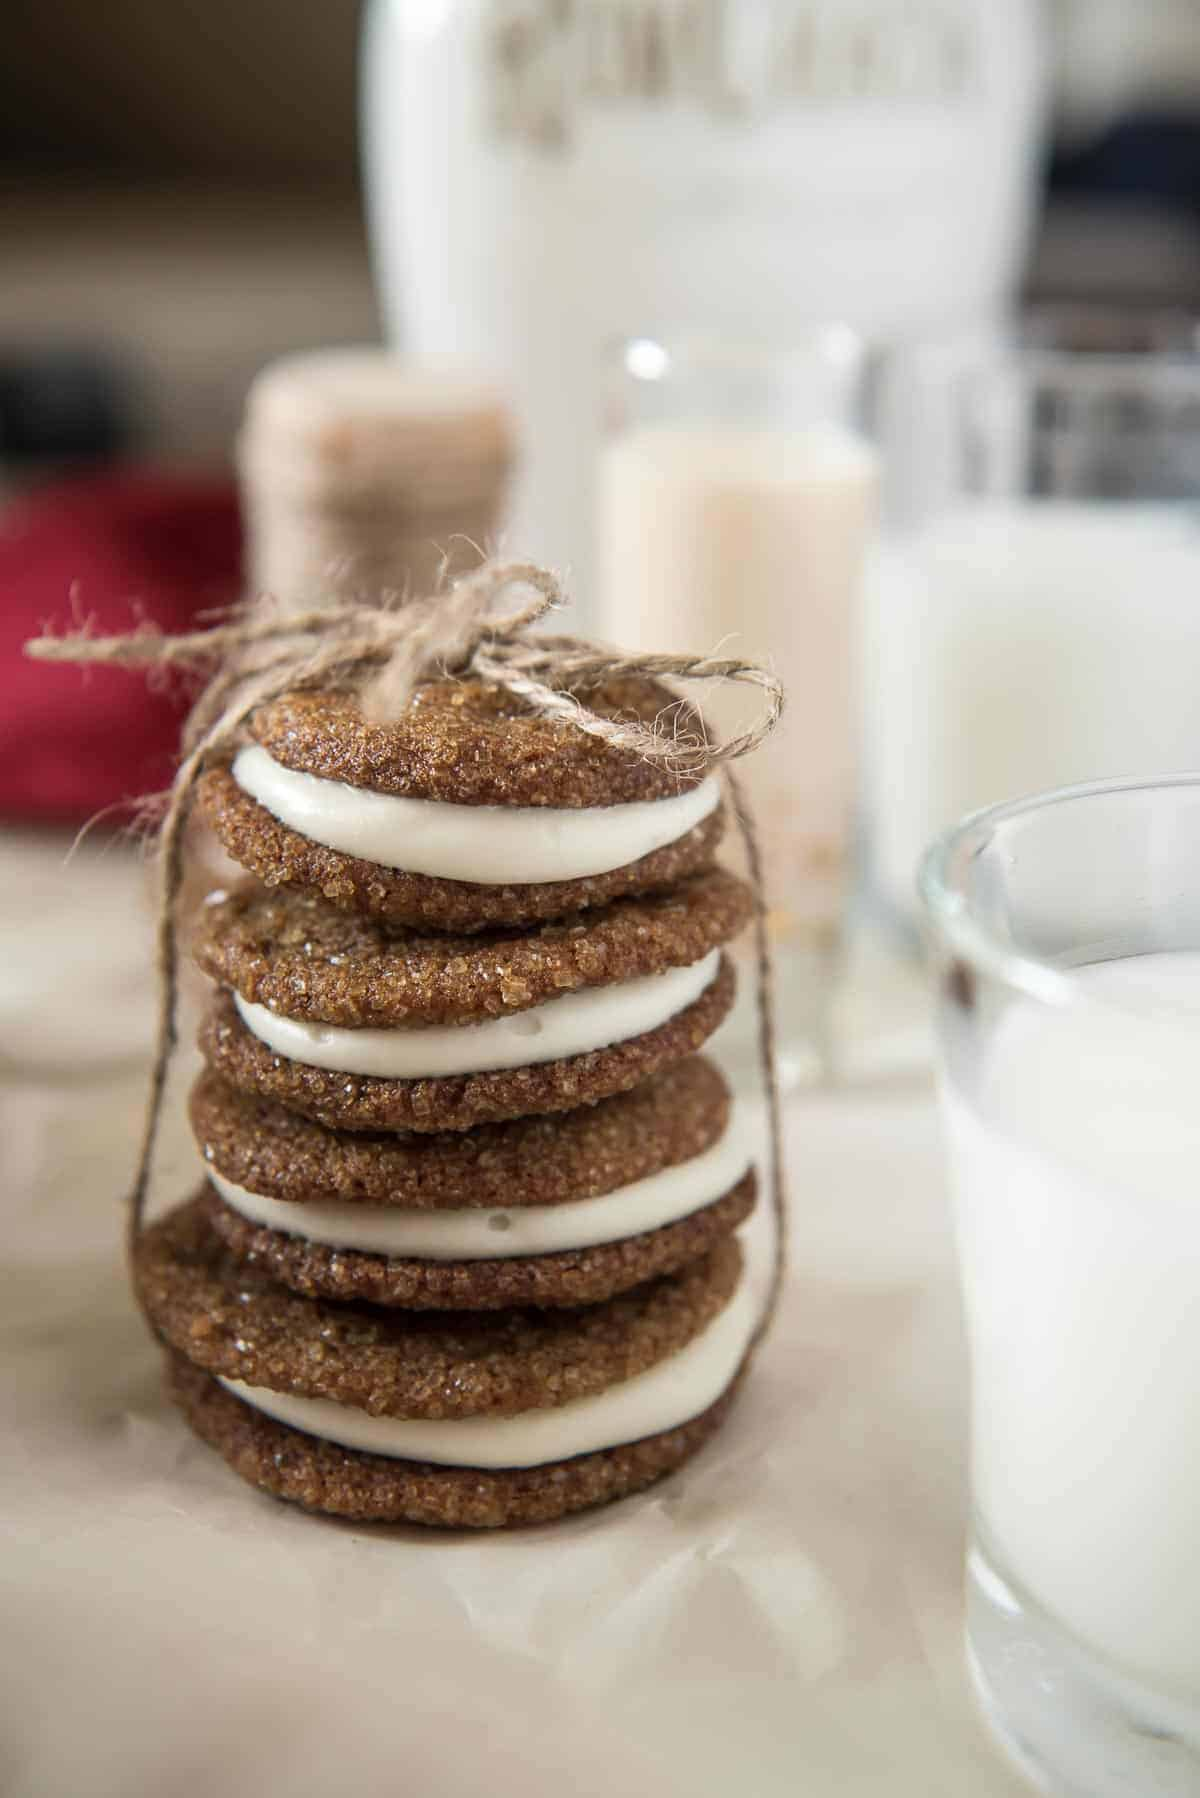 Soft & Chewy Ginger Snap Sandwich Cookies with Rum Cream Cheese